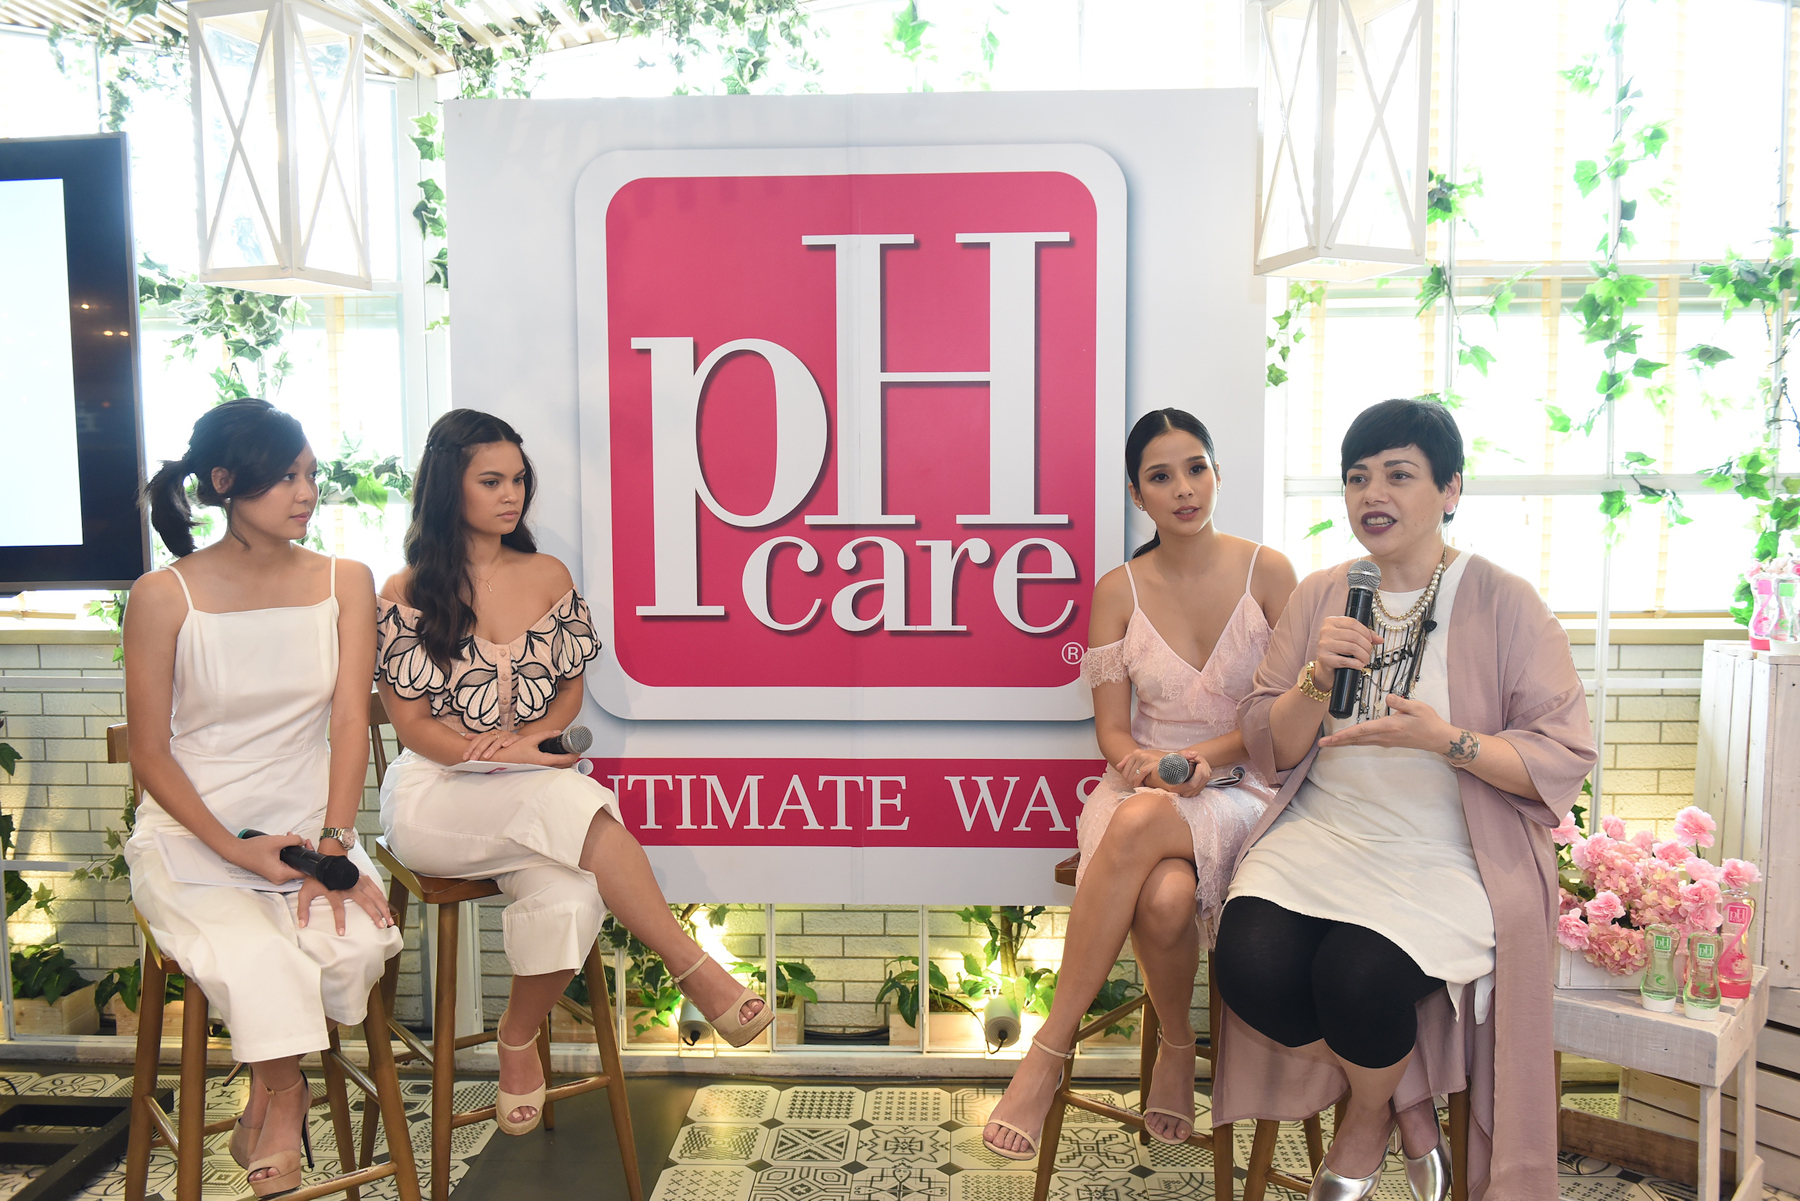 From left to right (Mica Adriano, Leila Alcasid, Maxene Magalona, and Pia Magalona